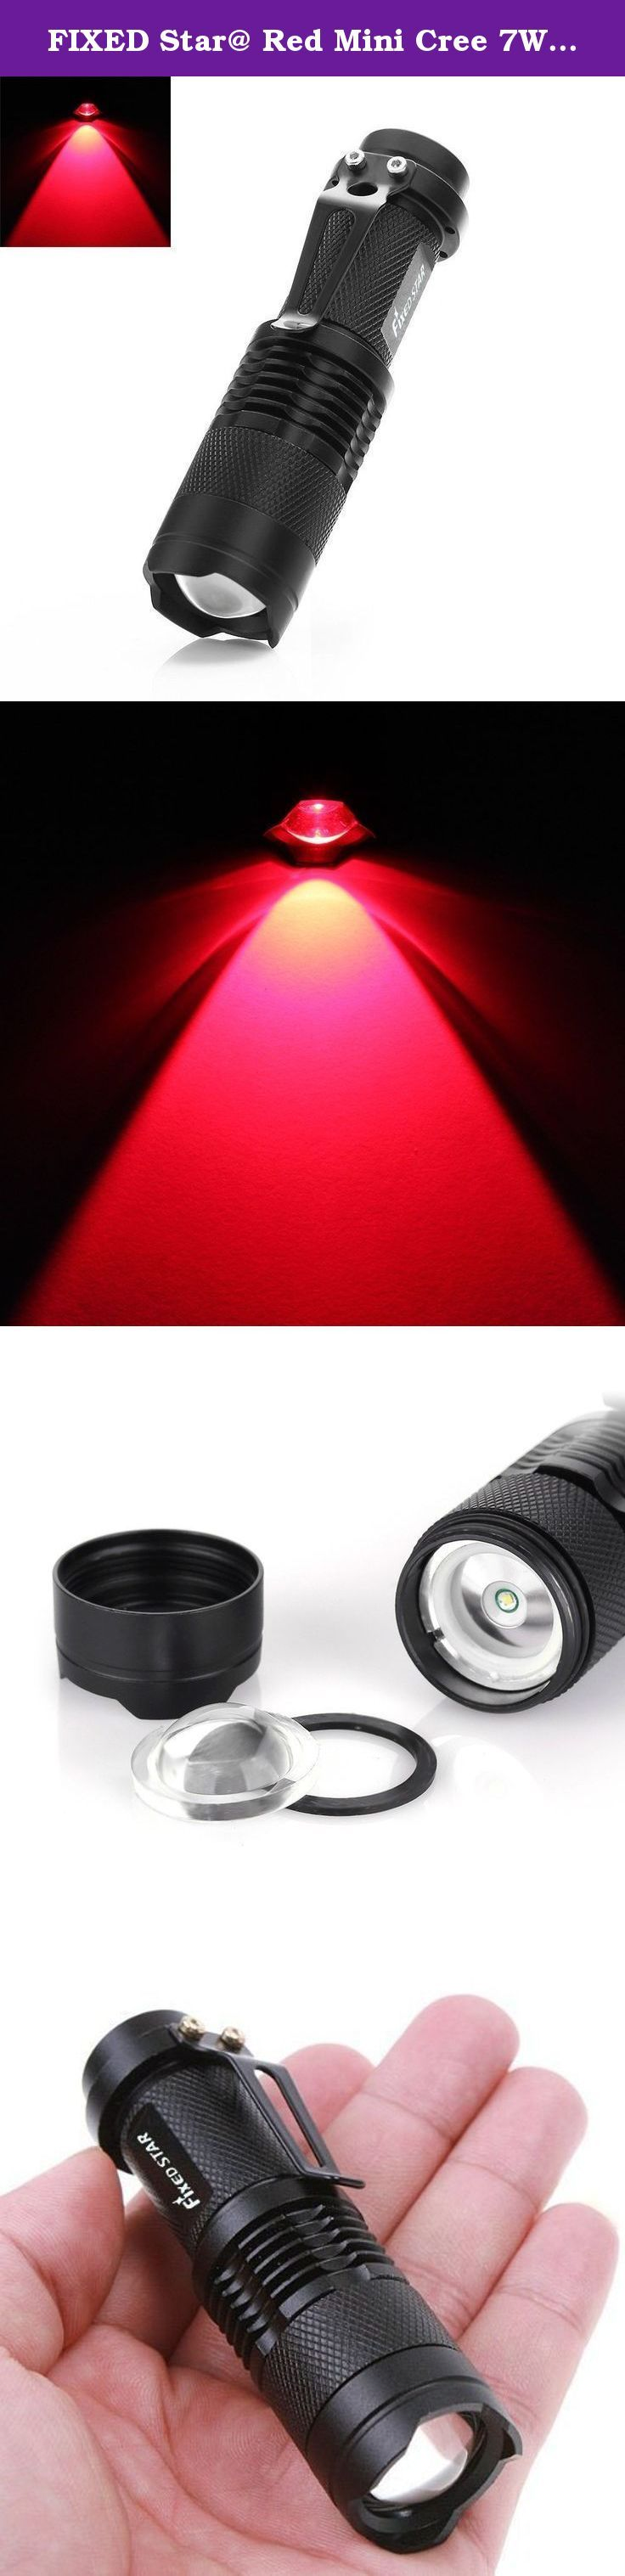 FIXED Star@ Red Mini Cree 7W 300LM Adjustable Focus Zoomable Focusing LED Flashlight Torch Cree Xm-l Sk68 Q5 LED 14500 Flashlight Torch. 3-Mode High -- Low -- Strobe Flashlight 1. Bulb: Q5 LED 2. Light Color: Red 3. Max output: 300 lumens 4. Reflector: Convex Lens 5. Material: Aluminum alloy 6. Size: 90mm × 25mm × 20mm 7. Net Weight: About 65g 8. Switch Location: Tail cap 9. Zoom: Yes 10. Water Resistant: Yes, Please do not submerge the flashlight into water Power Source 1 × 14500 battery…